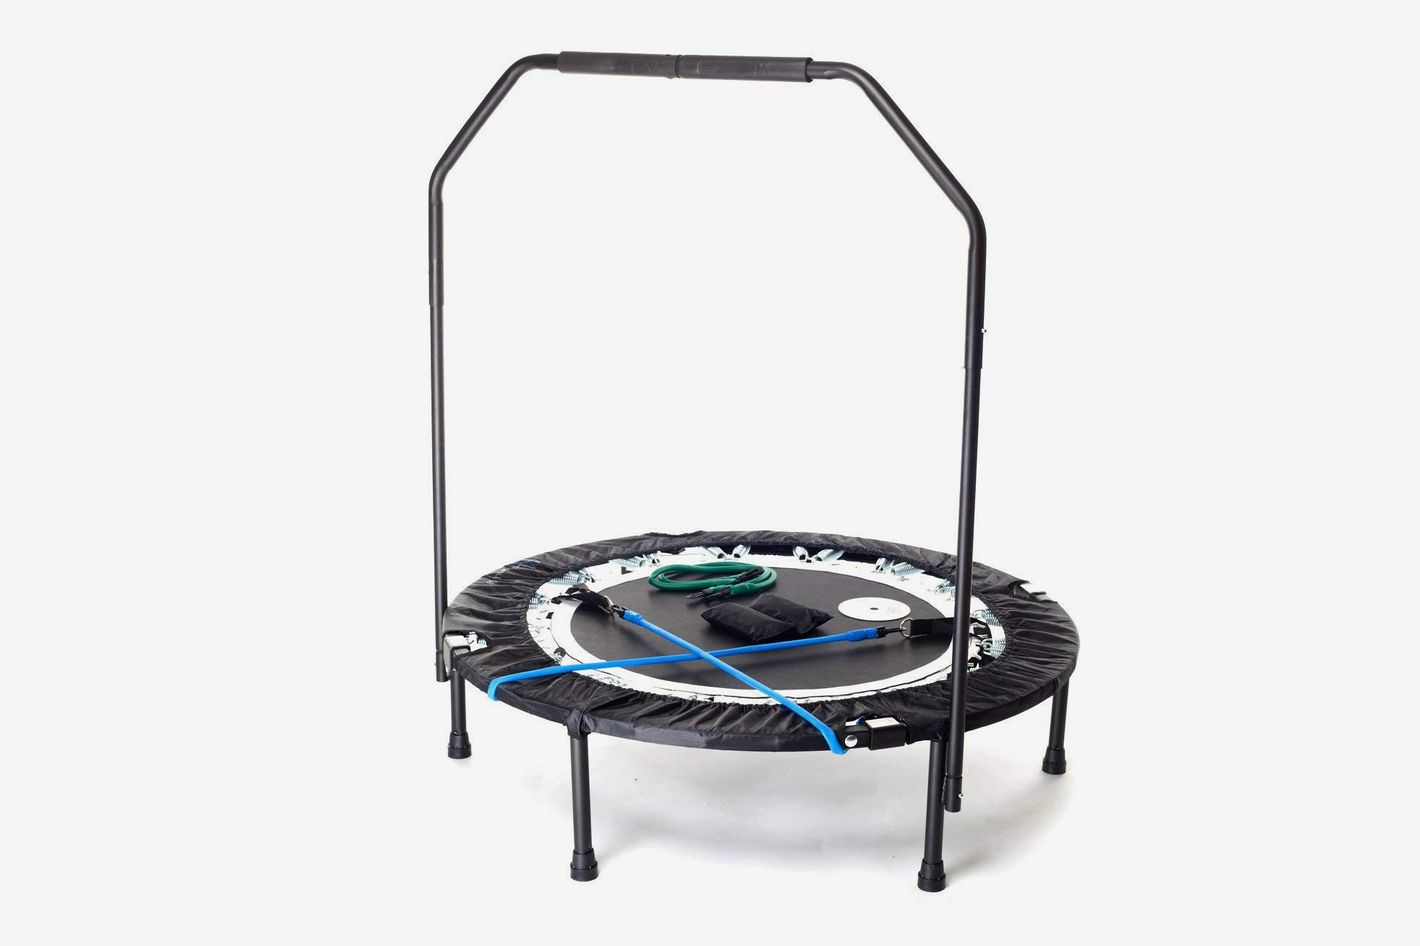 MaXimus Pro Quarter Folding Rebounder Mini Trampoline